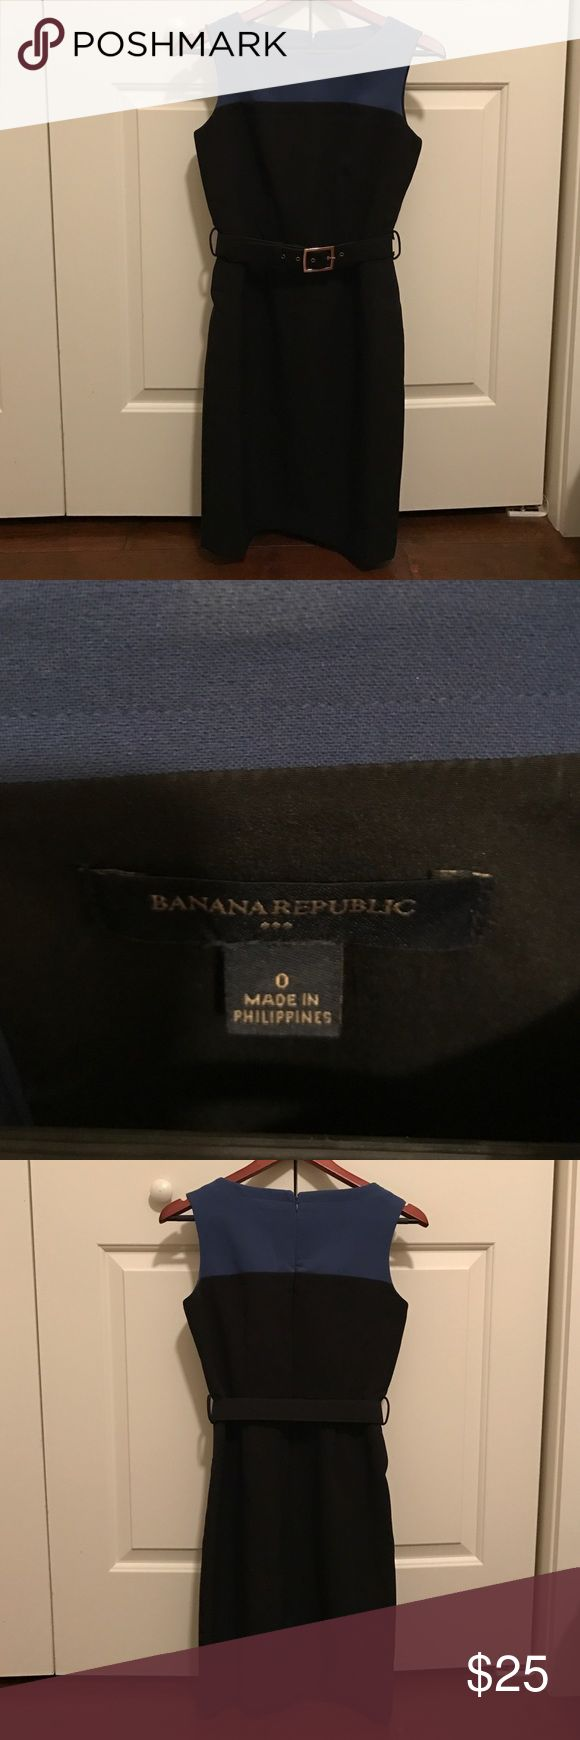 Banana Republic Dress Blue and black two tone Banana Republic Dress. Belted with a gold buckle. Good condition. Excellent for work. Banana Republic Dresses